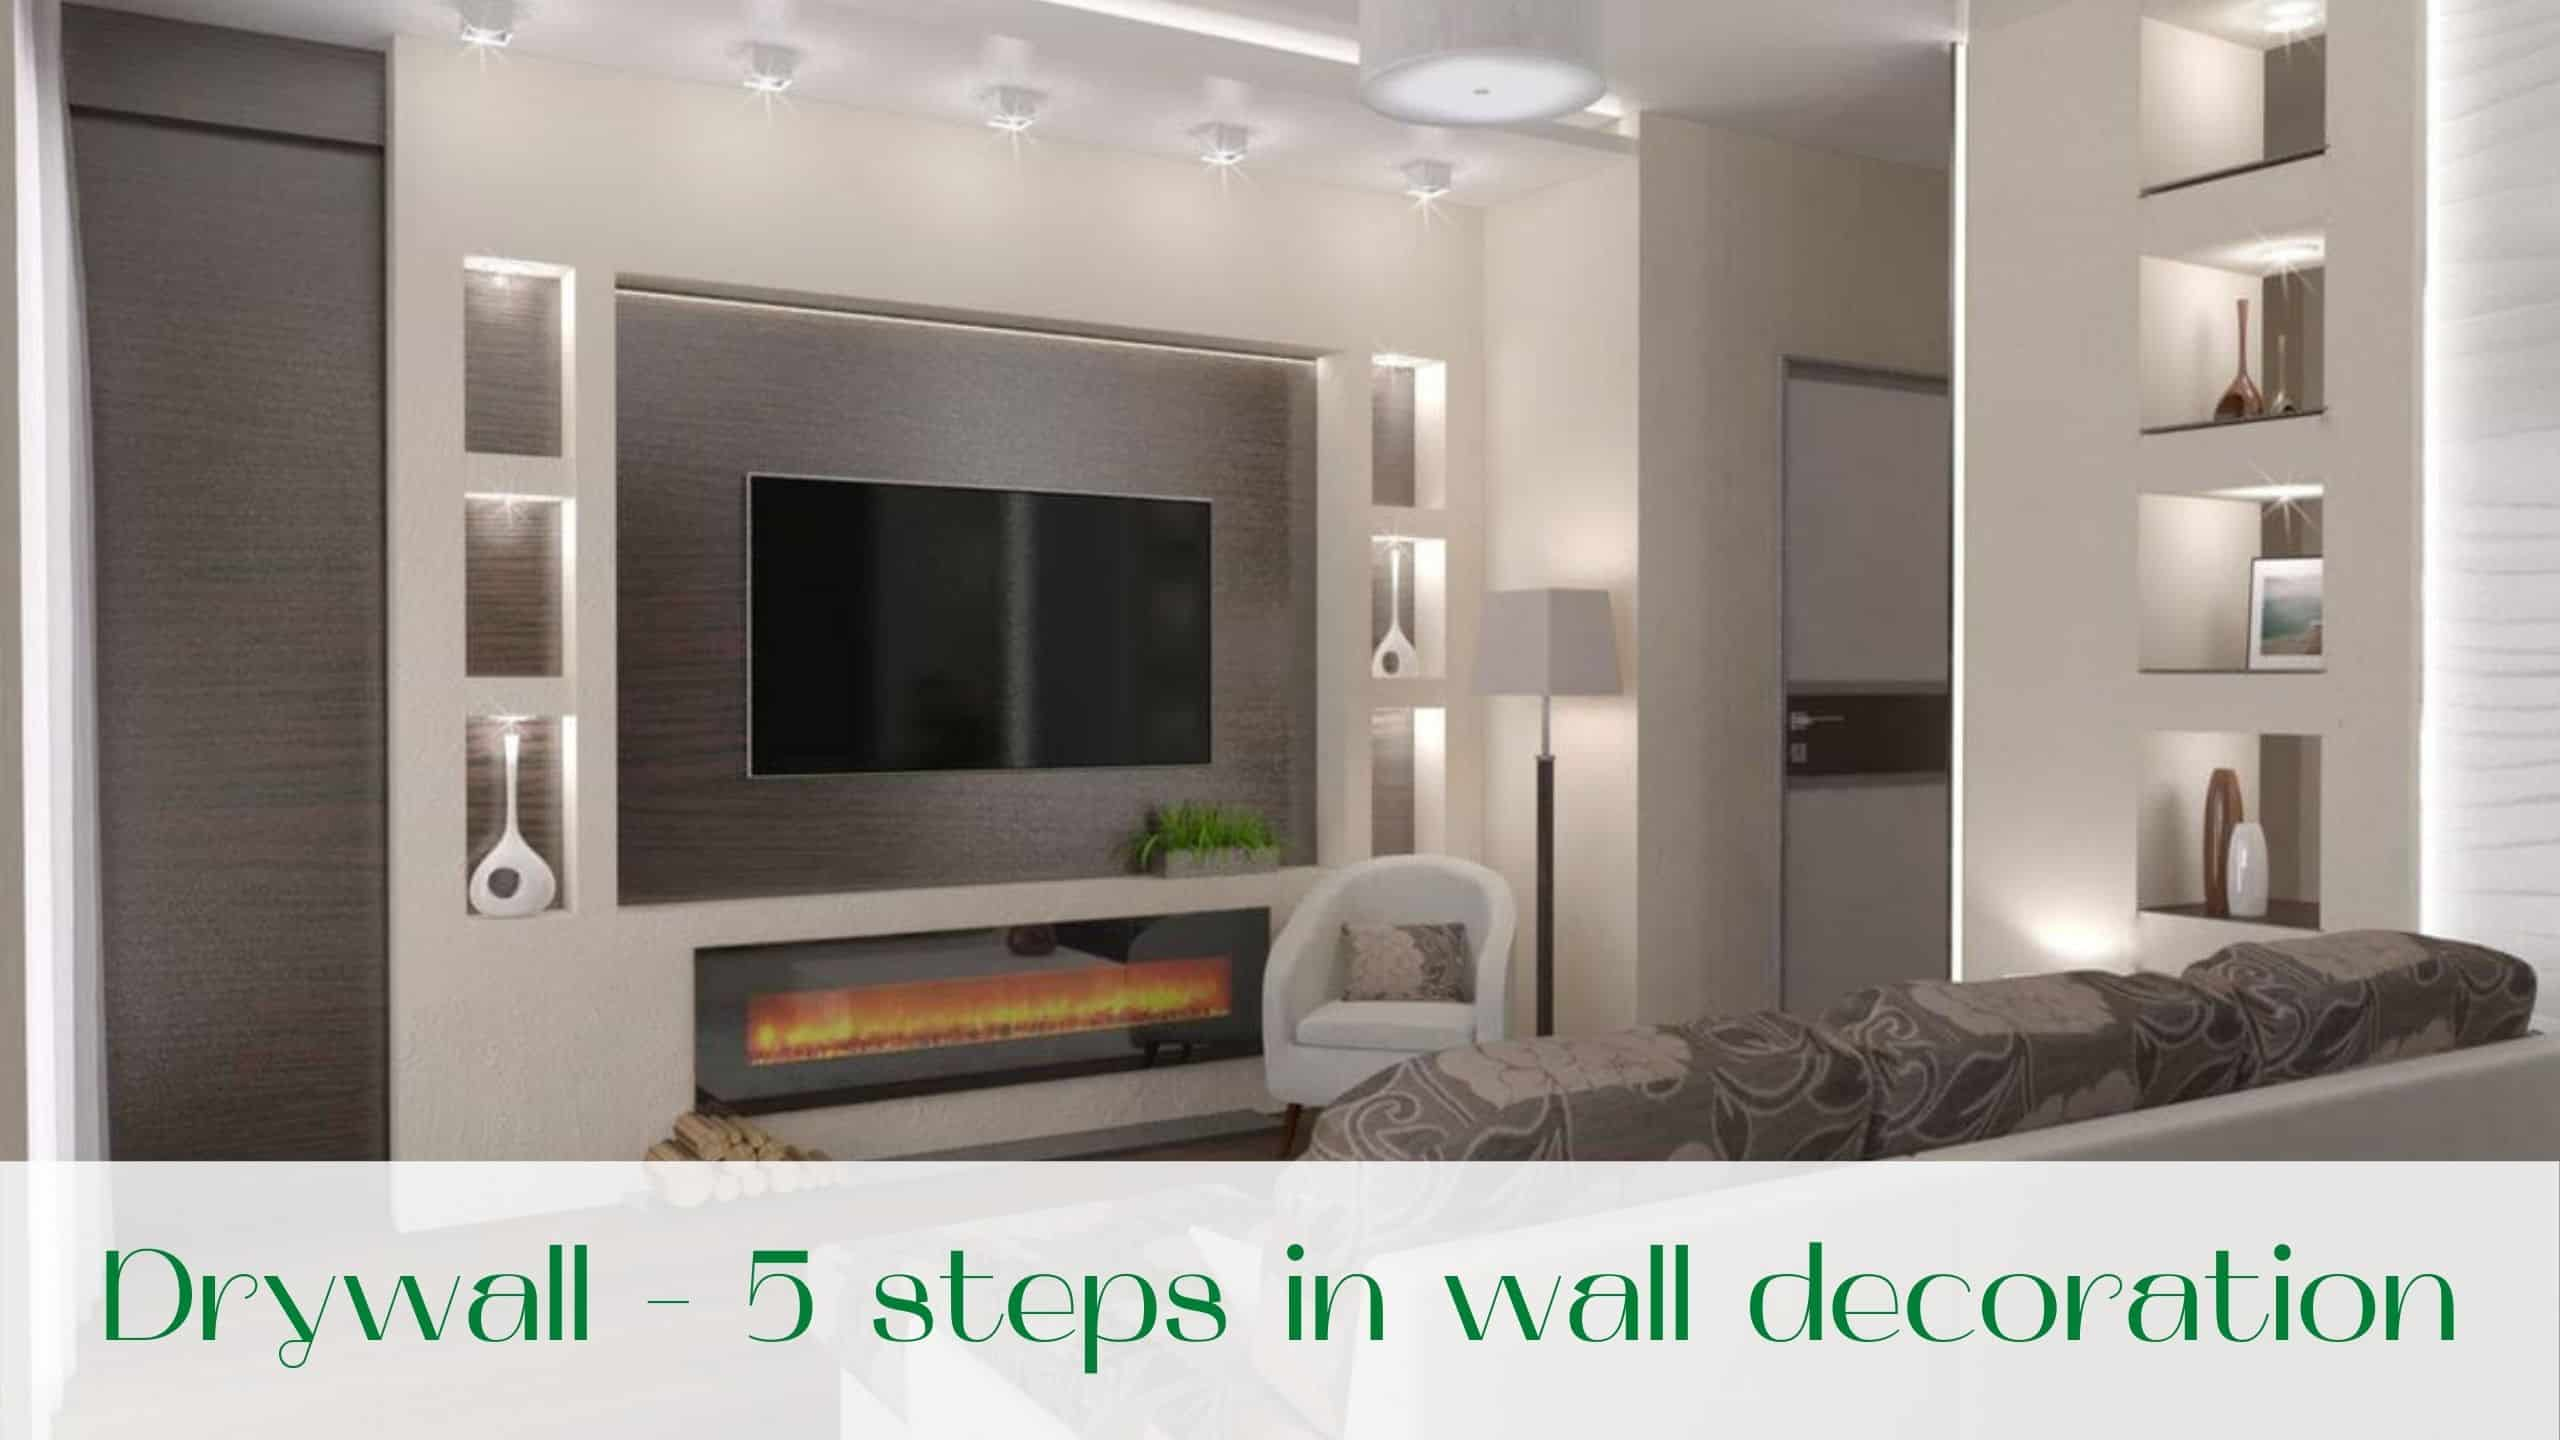 image-Drywall-5-steps-in-wall-decoration